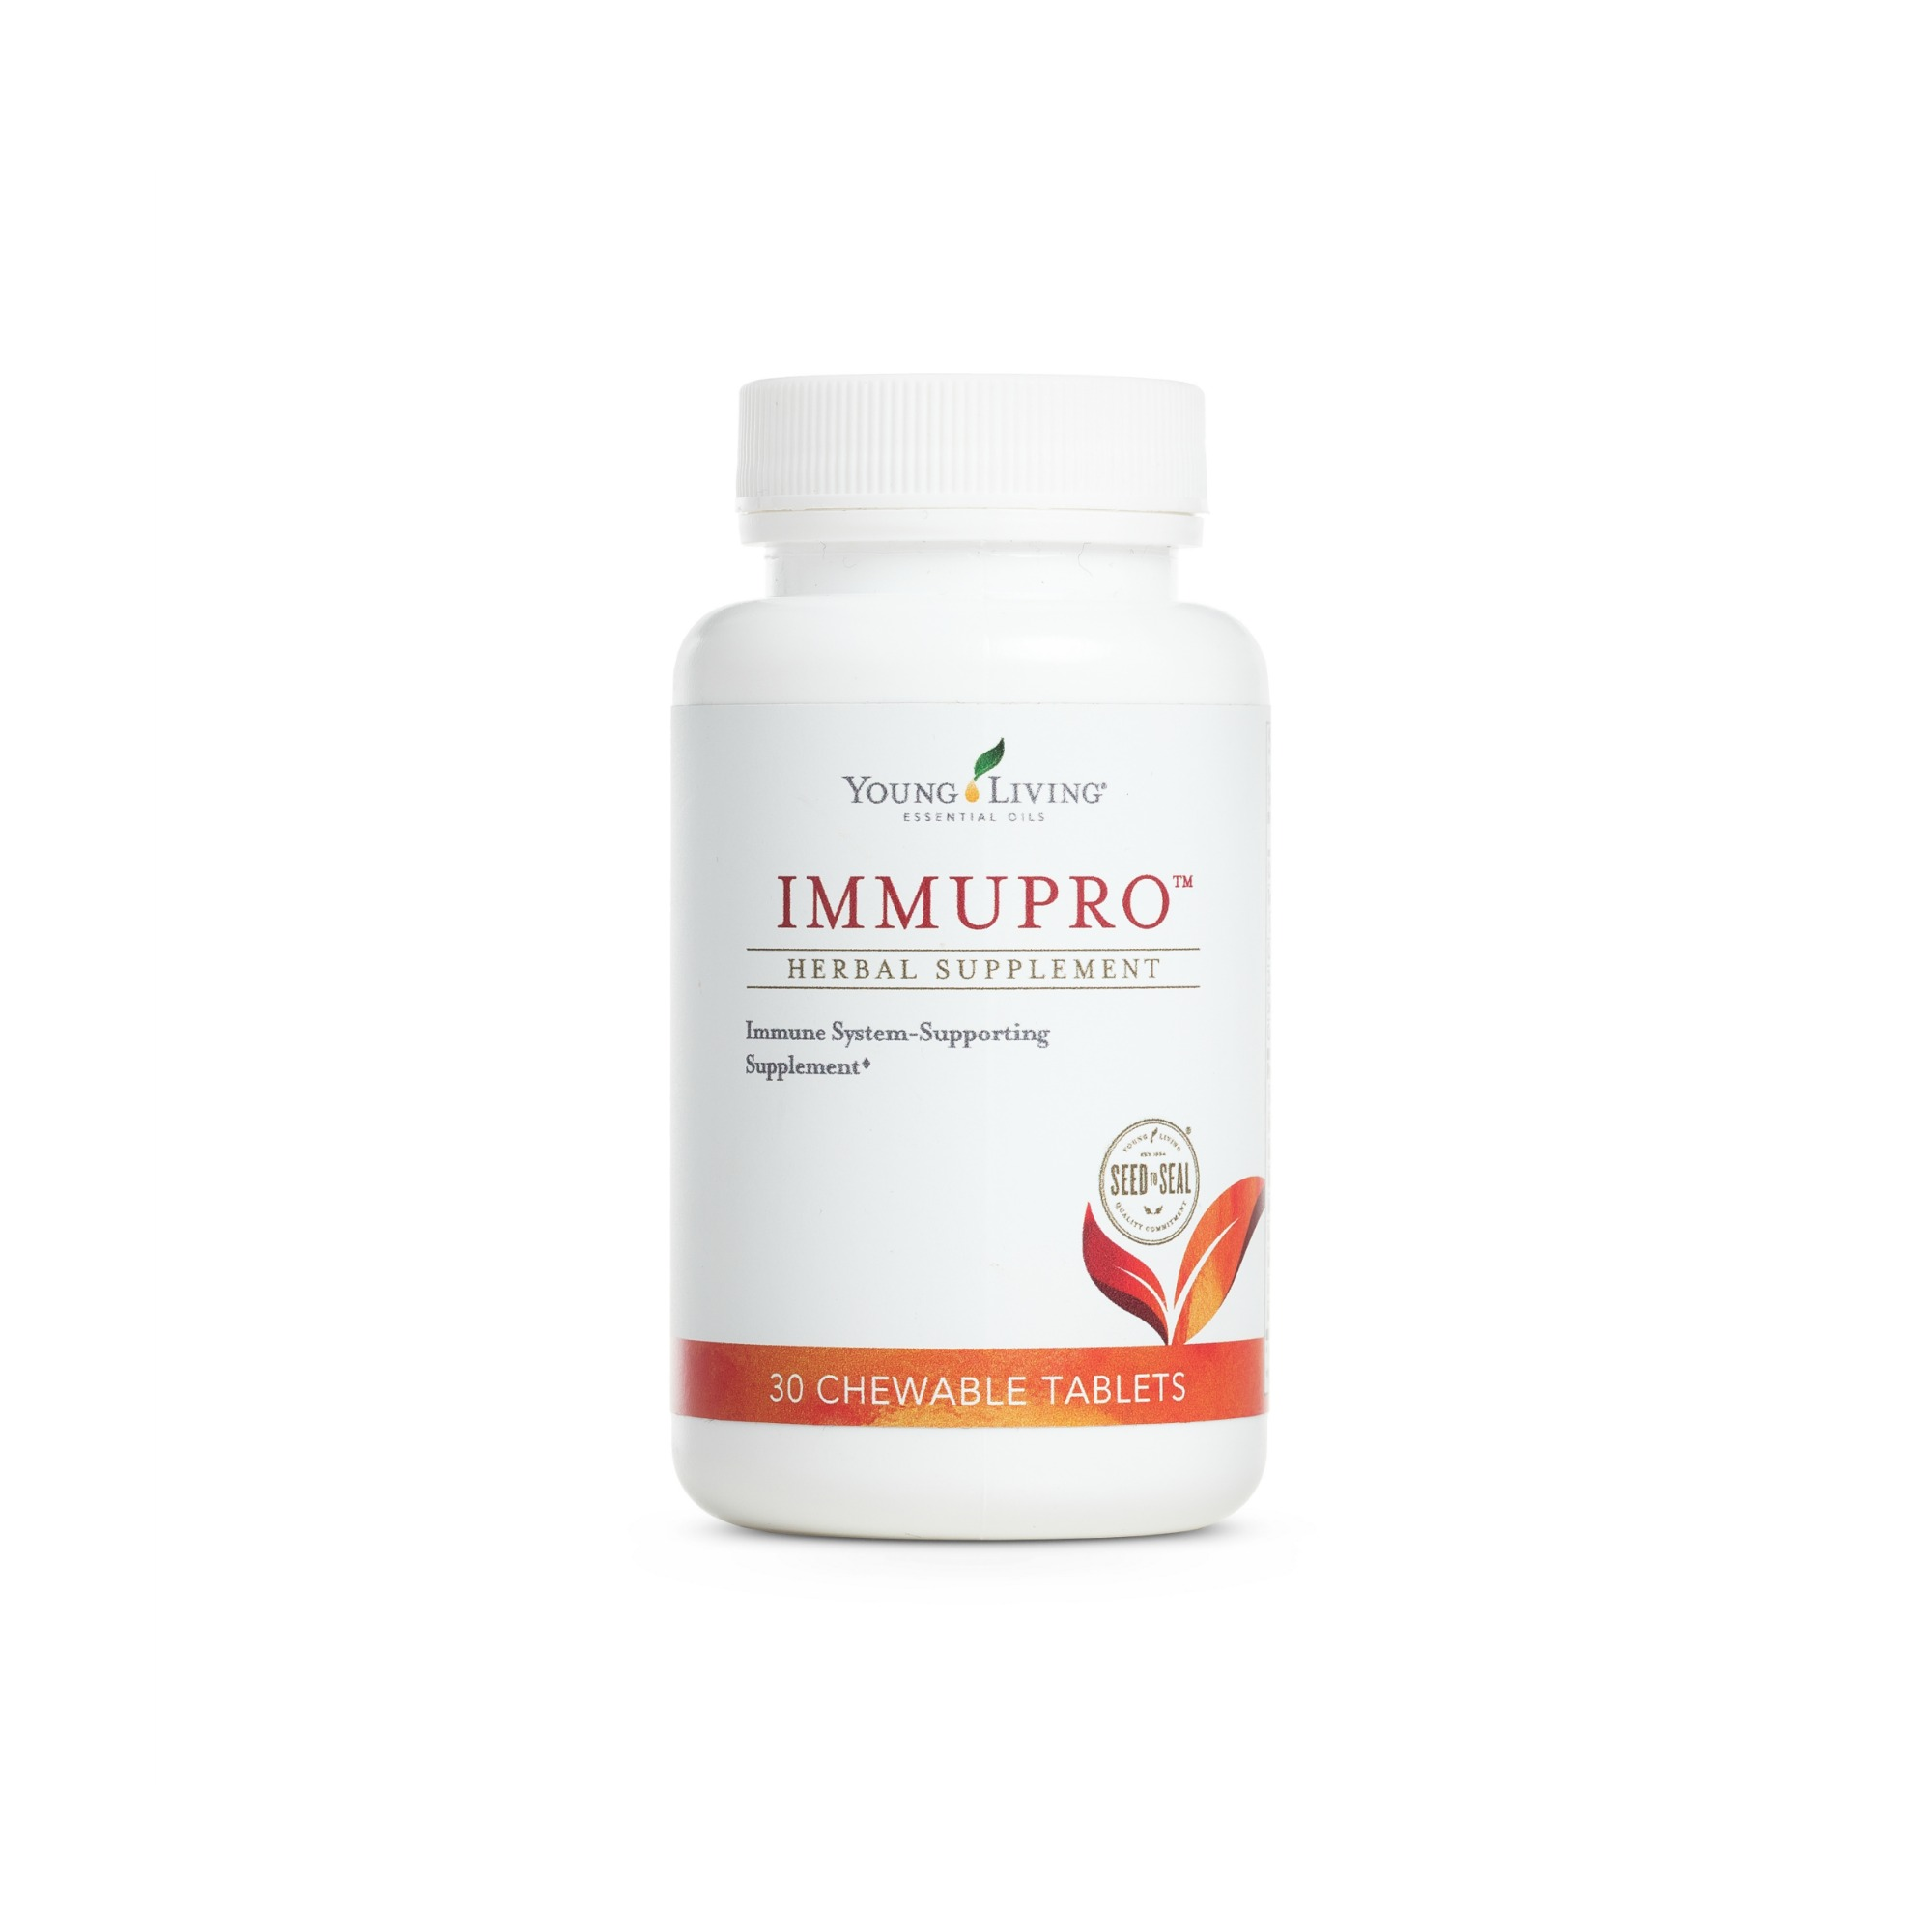 IMMUPRO CHEWABLES    ImmuPro Chewables have been specially formulated to provide exceptional immune system support. It combines naturally-derived immune-supporting Ningxia wolfberry polysaccharides with a unique blend of reishi, maitake, and agaricus blazei mushroom powders to deliver powerful antioxidant activity to help reduce the damaging effects of oxidative stress from free radicals. It also delivers melatonin, which encourages restful sleep by promoting the body's natural sleep rhythm. This delicious fruit-flavored chewable supplement also has the same great wolfberry flavor but with a new crunchy texture.   Click here   to learn more about this product.